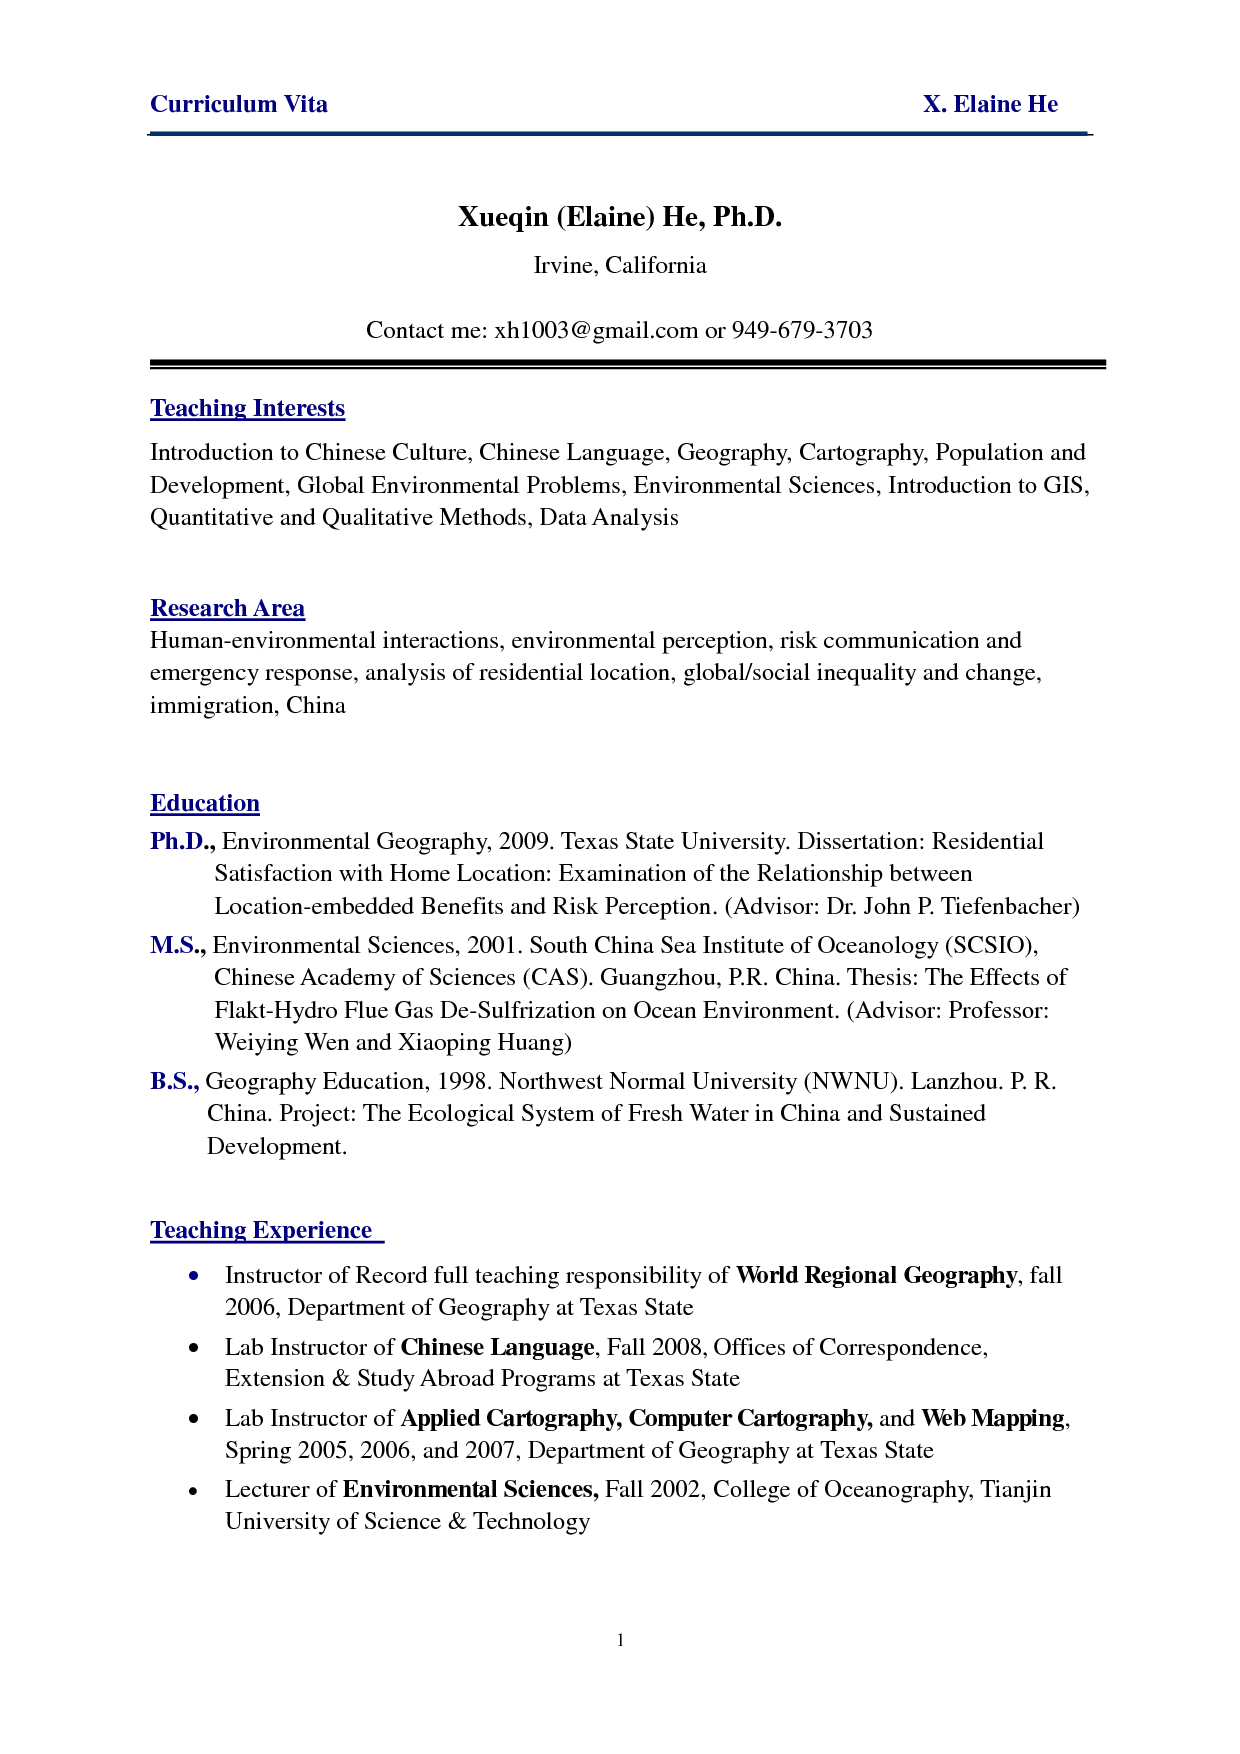 free resume templates for lpn nurses